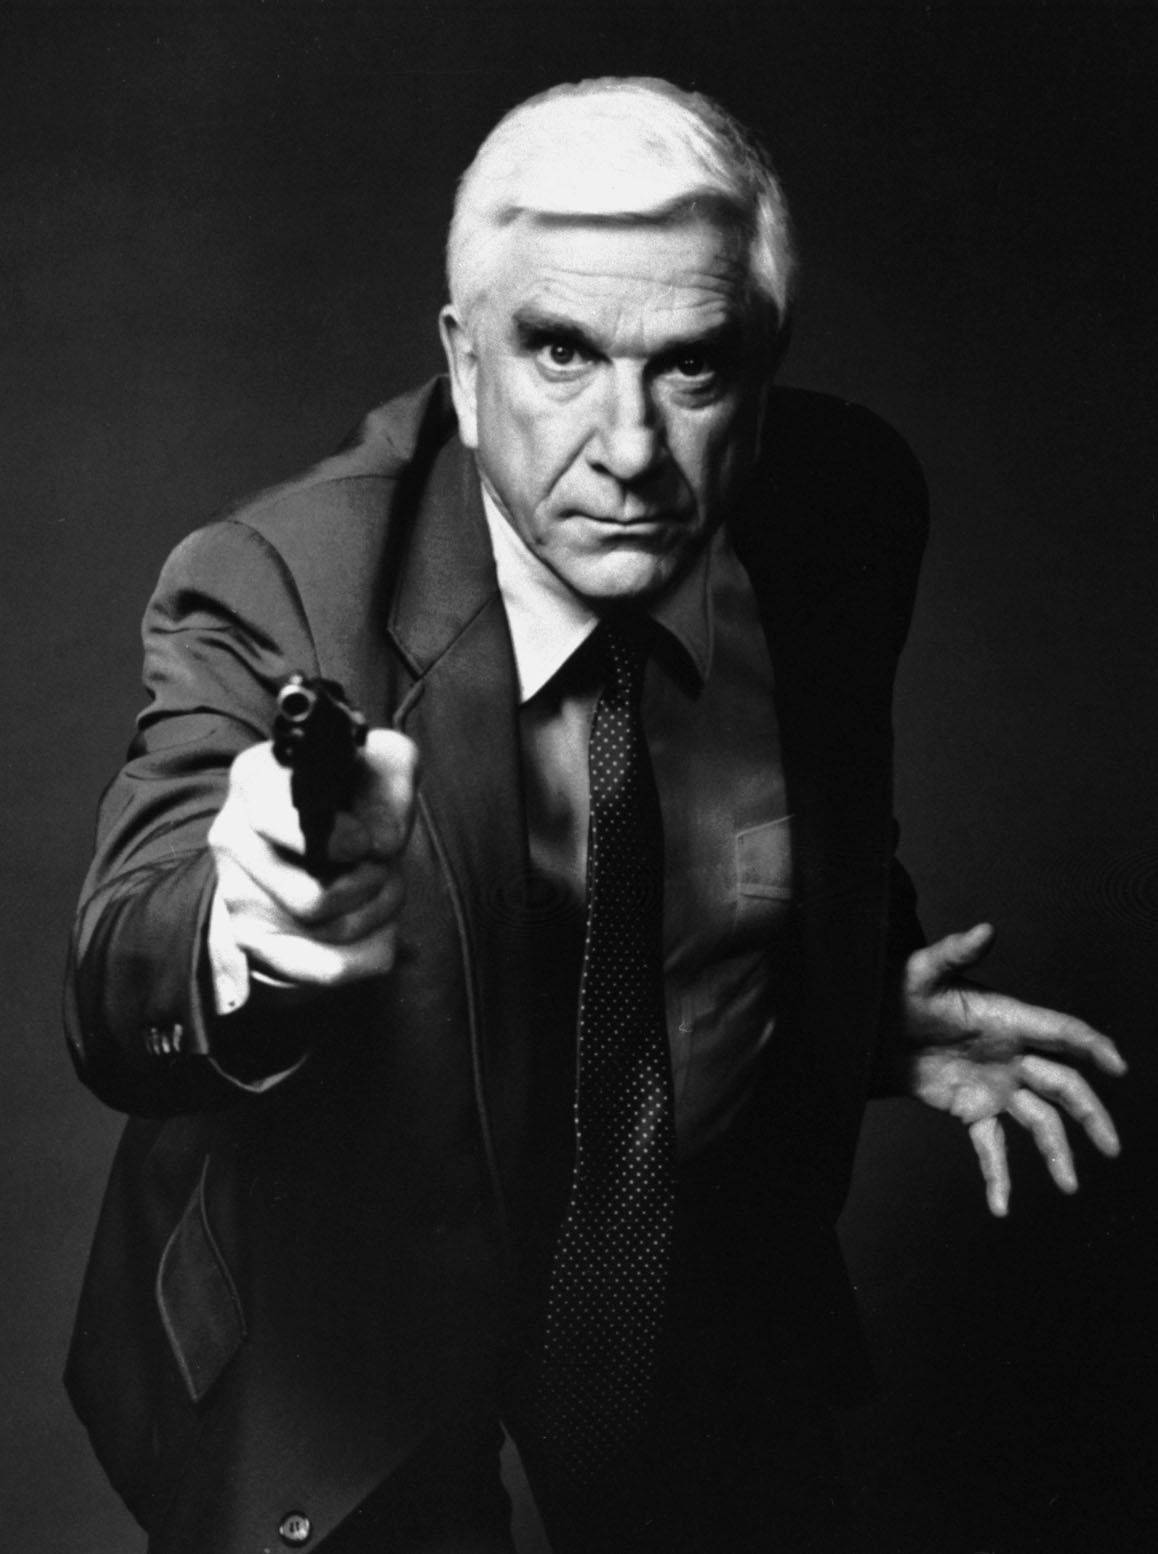 Leslie Nielsen, known for his satirical roles in film, died Nov. 28, 2010, at age 84.